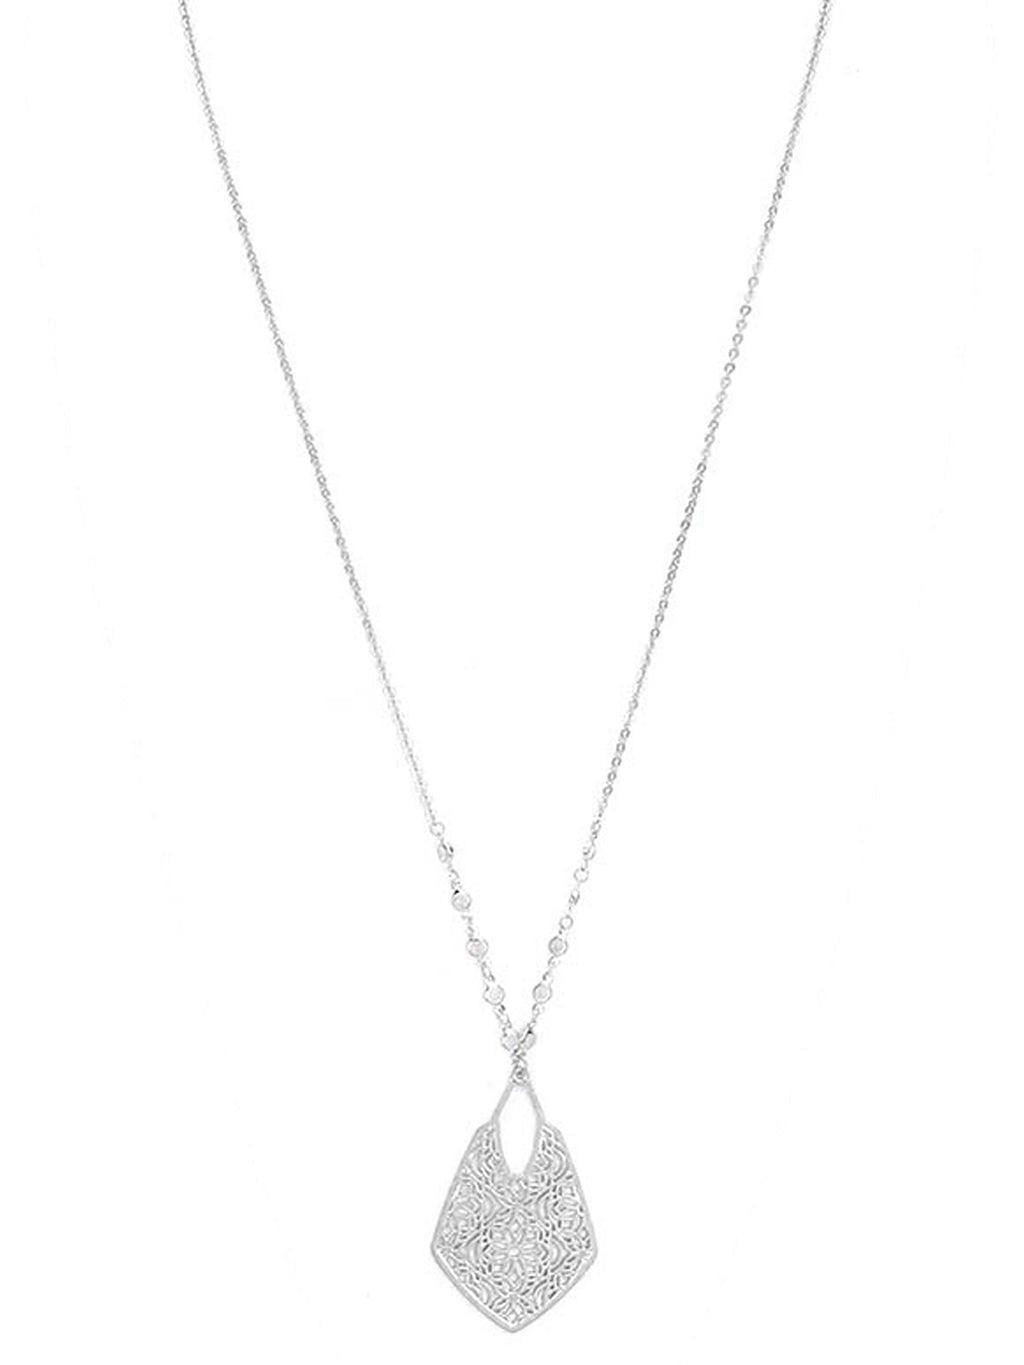 Silver Floral Filigree Long Pendant Necklace